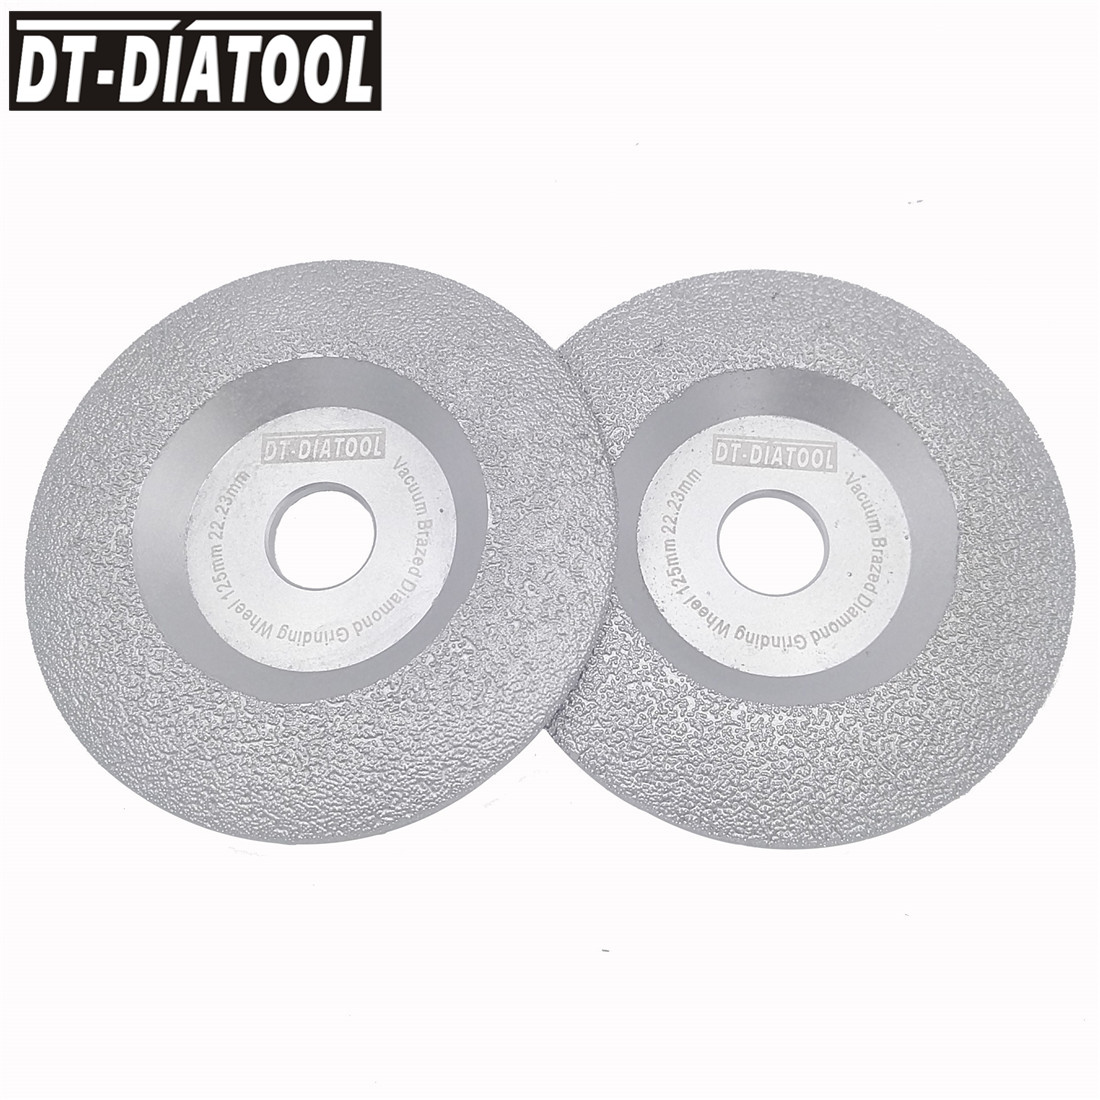 DT-DIATOOL 2 units Diameter 125mm Vacuum Brazed Diamond Disc Grinding Wheel Dry Long Life Stone and Construction Material 5 diatool dia75mmx30mm hand held grinding wheel vacuum brazed diamond flat grinding wheel profile wheel for stone artificial stone